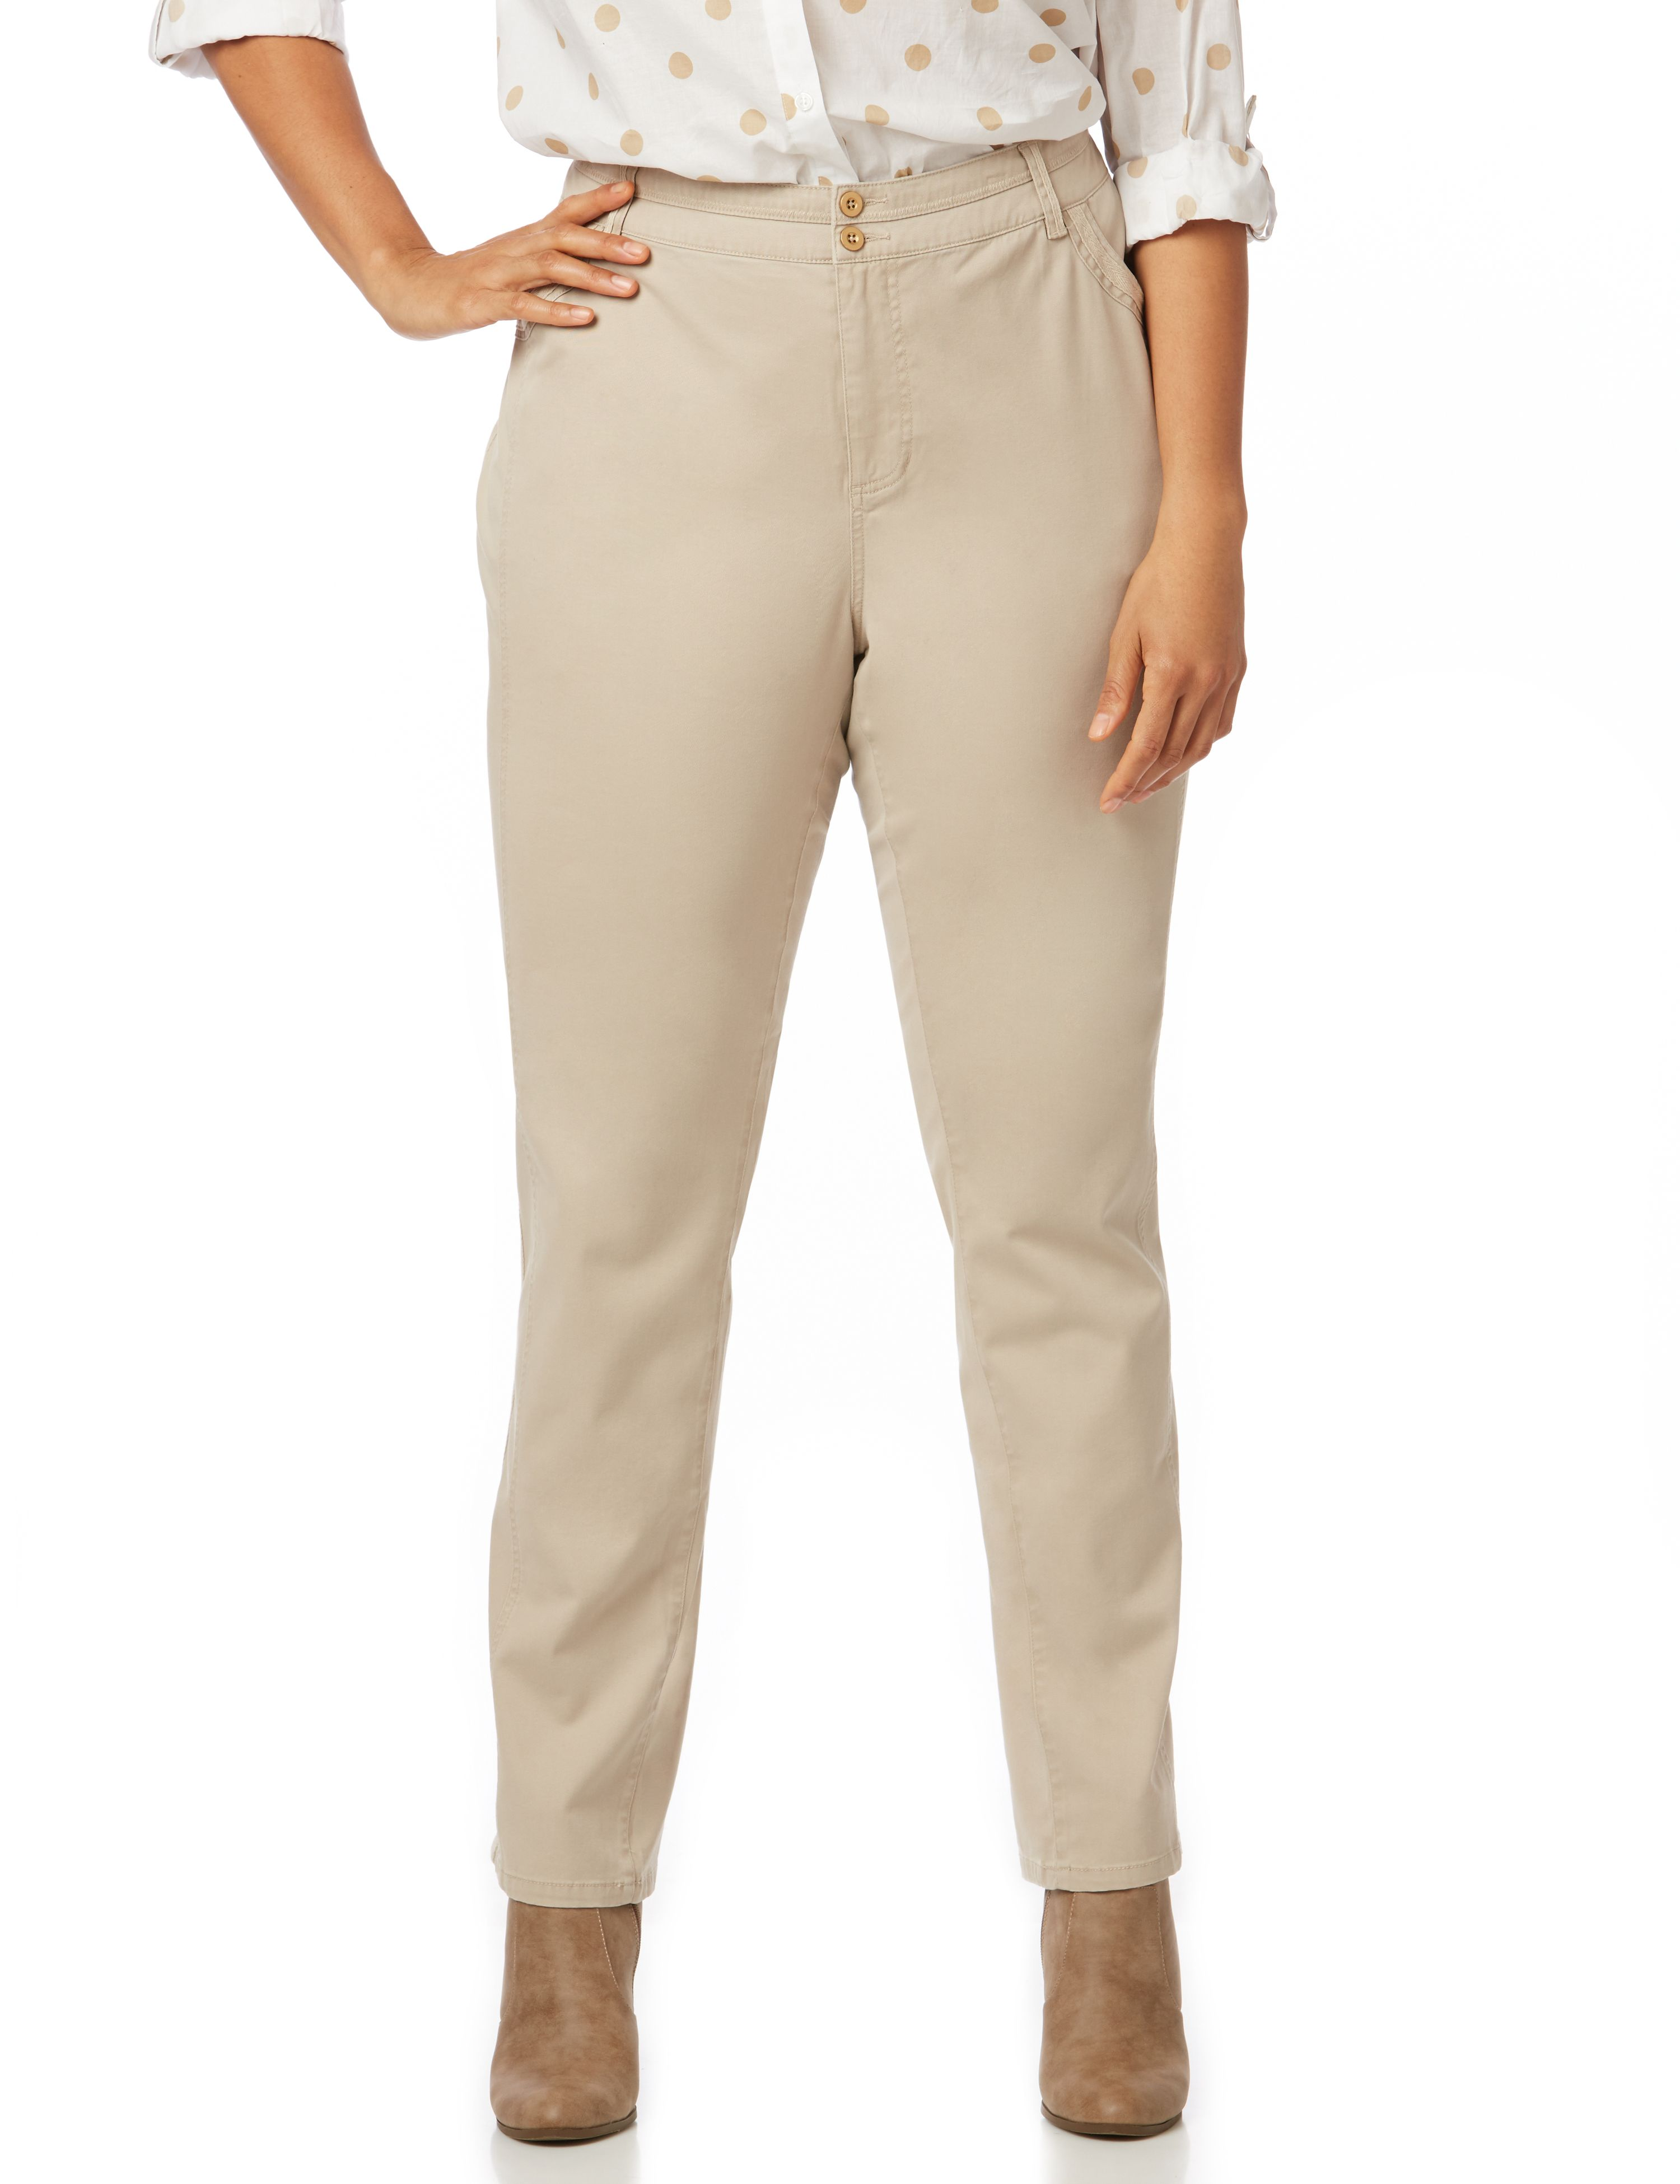 Casual Comfort Pant 1088414 CHINO WITH TWILL TAPE DETAI MP-300092462